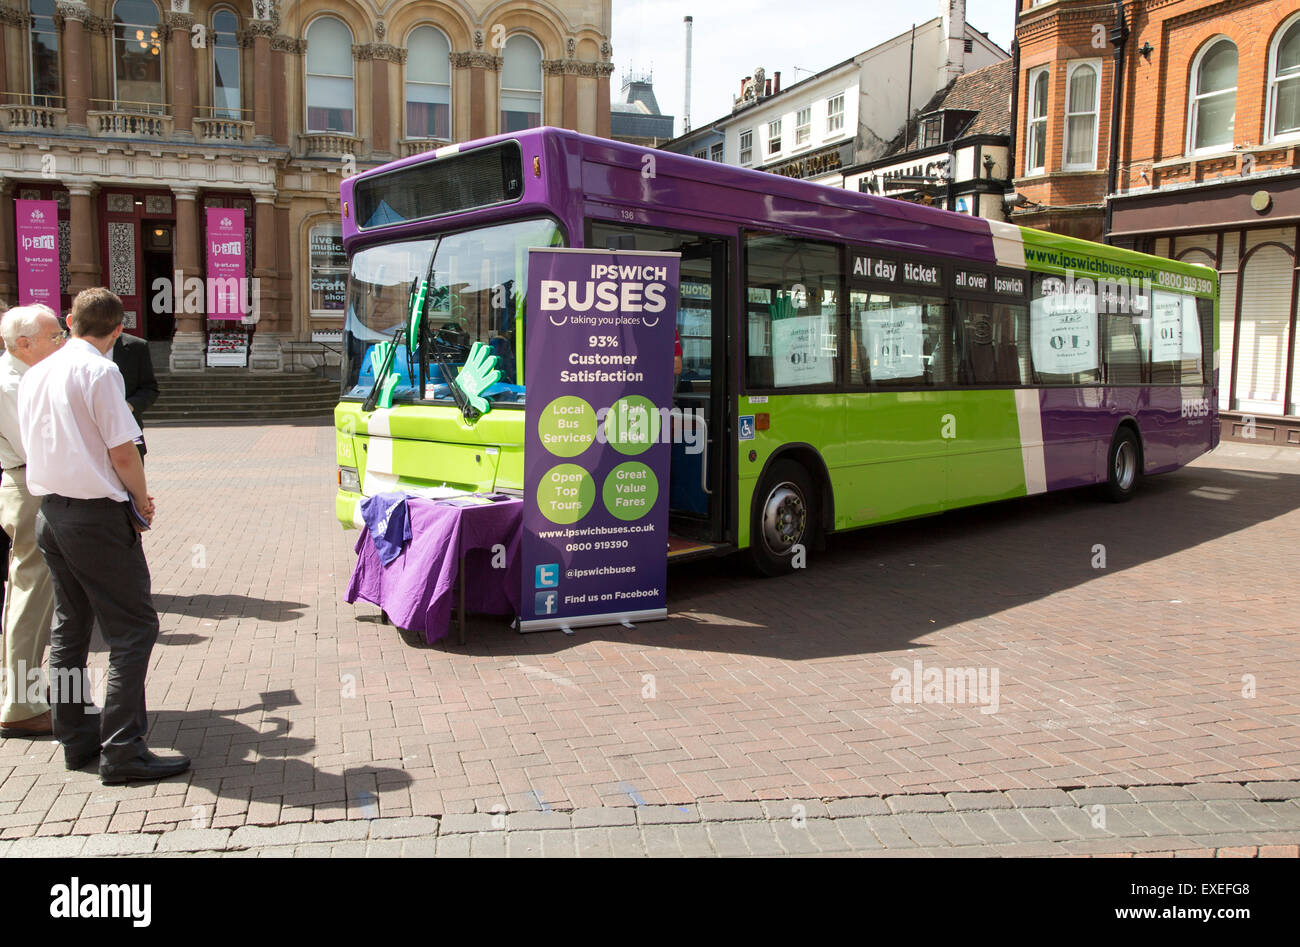 Public promotion publicity event for bus service in central Ipswich, Suffolk, England, UK - Stock Image